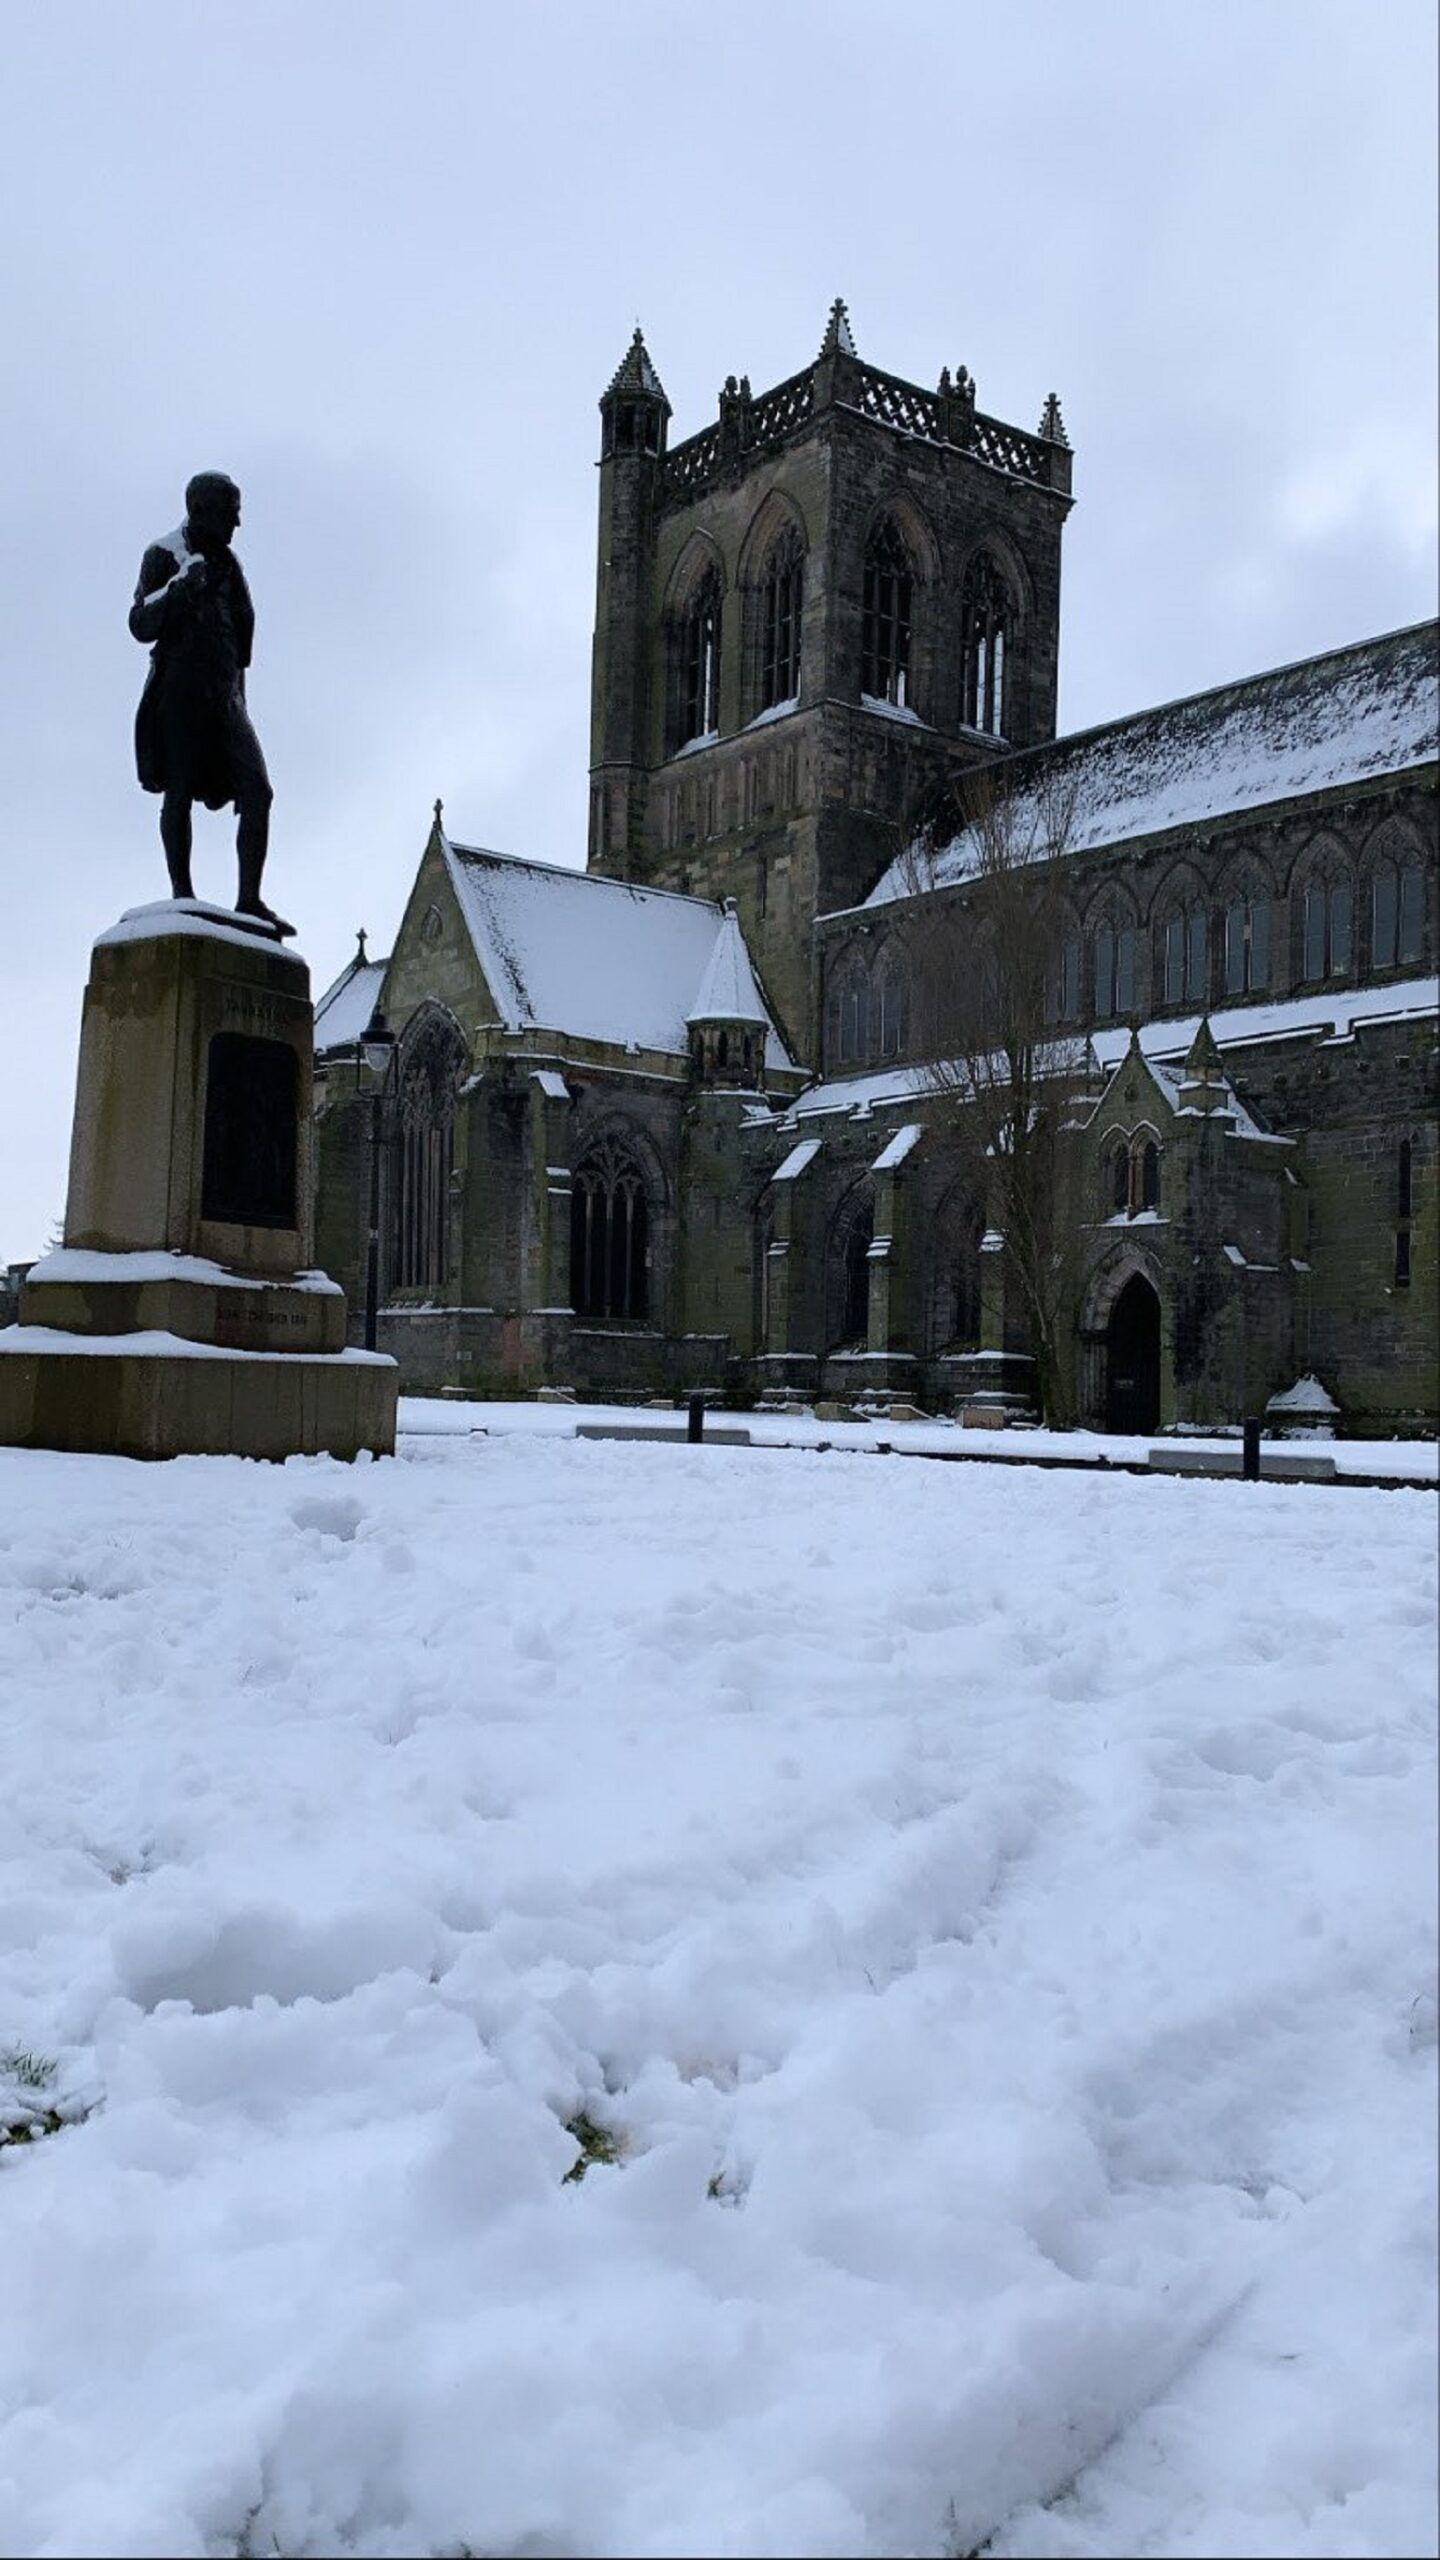 Photo of snow at Paisley Abbey by @Erinkate_92 on Twitter